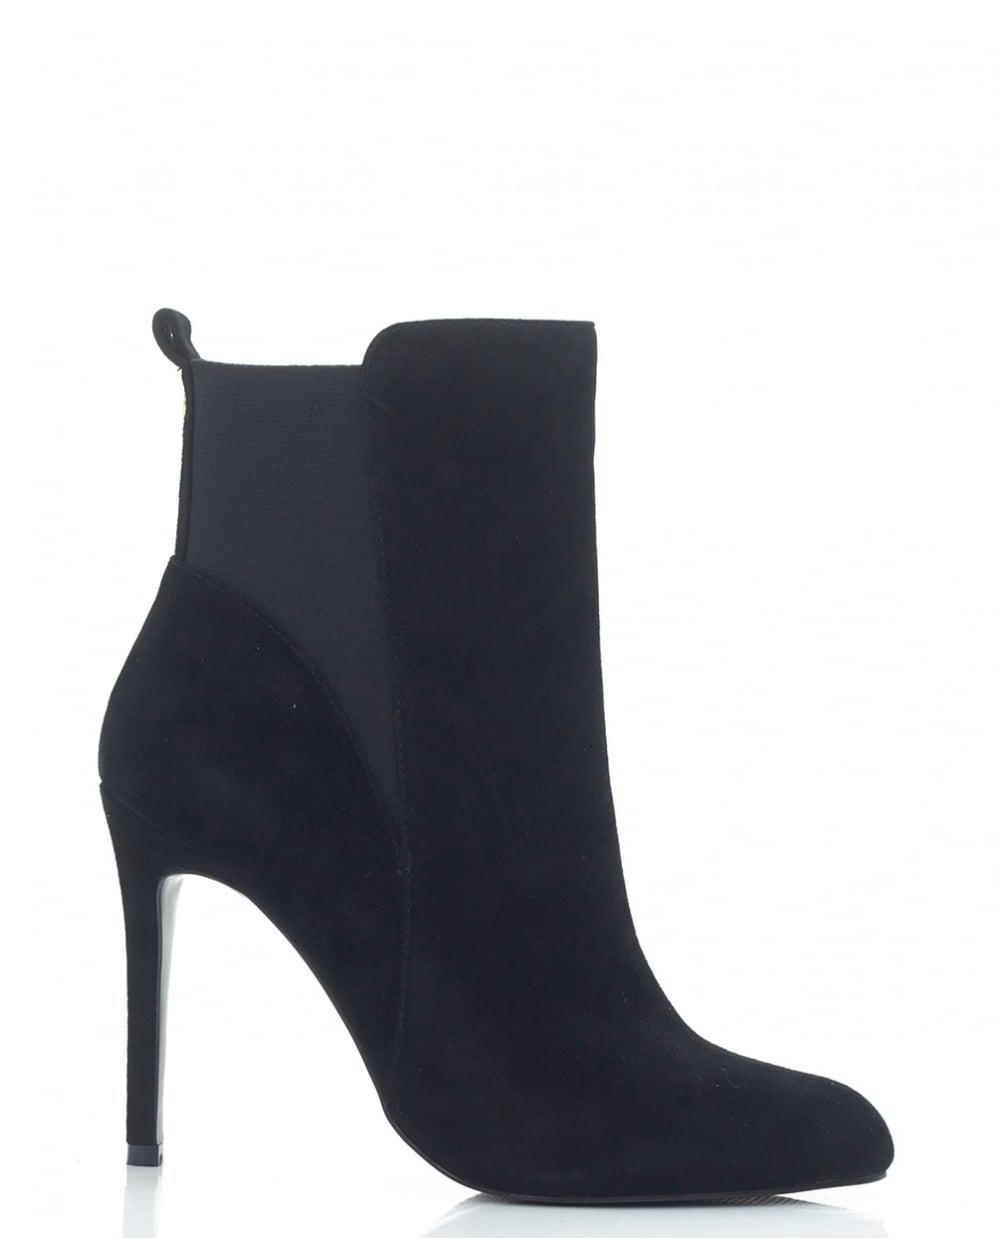 Lyst - Moda In Pelle Pointed Toe High Heel Ankle Boots in Black 8775579e8d3b